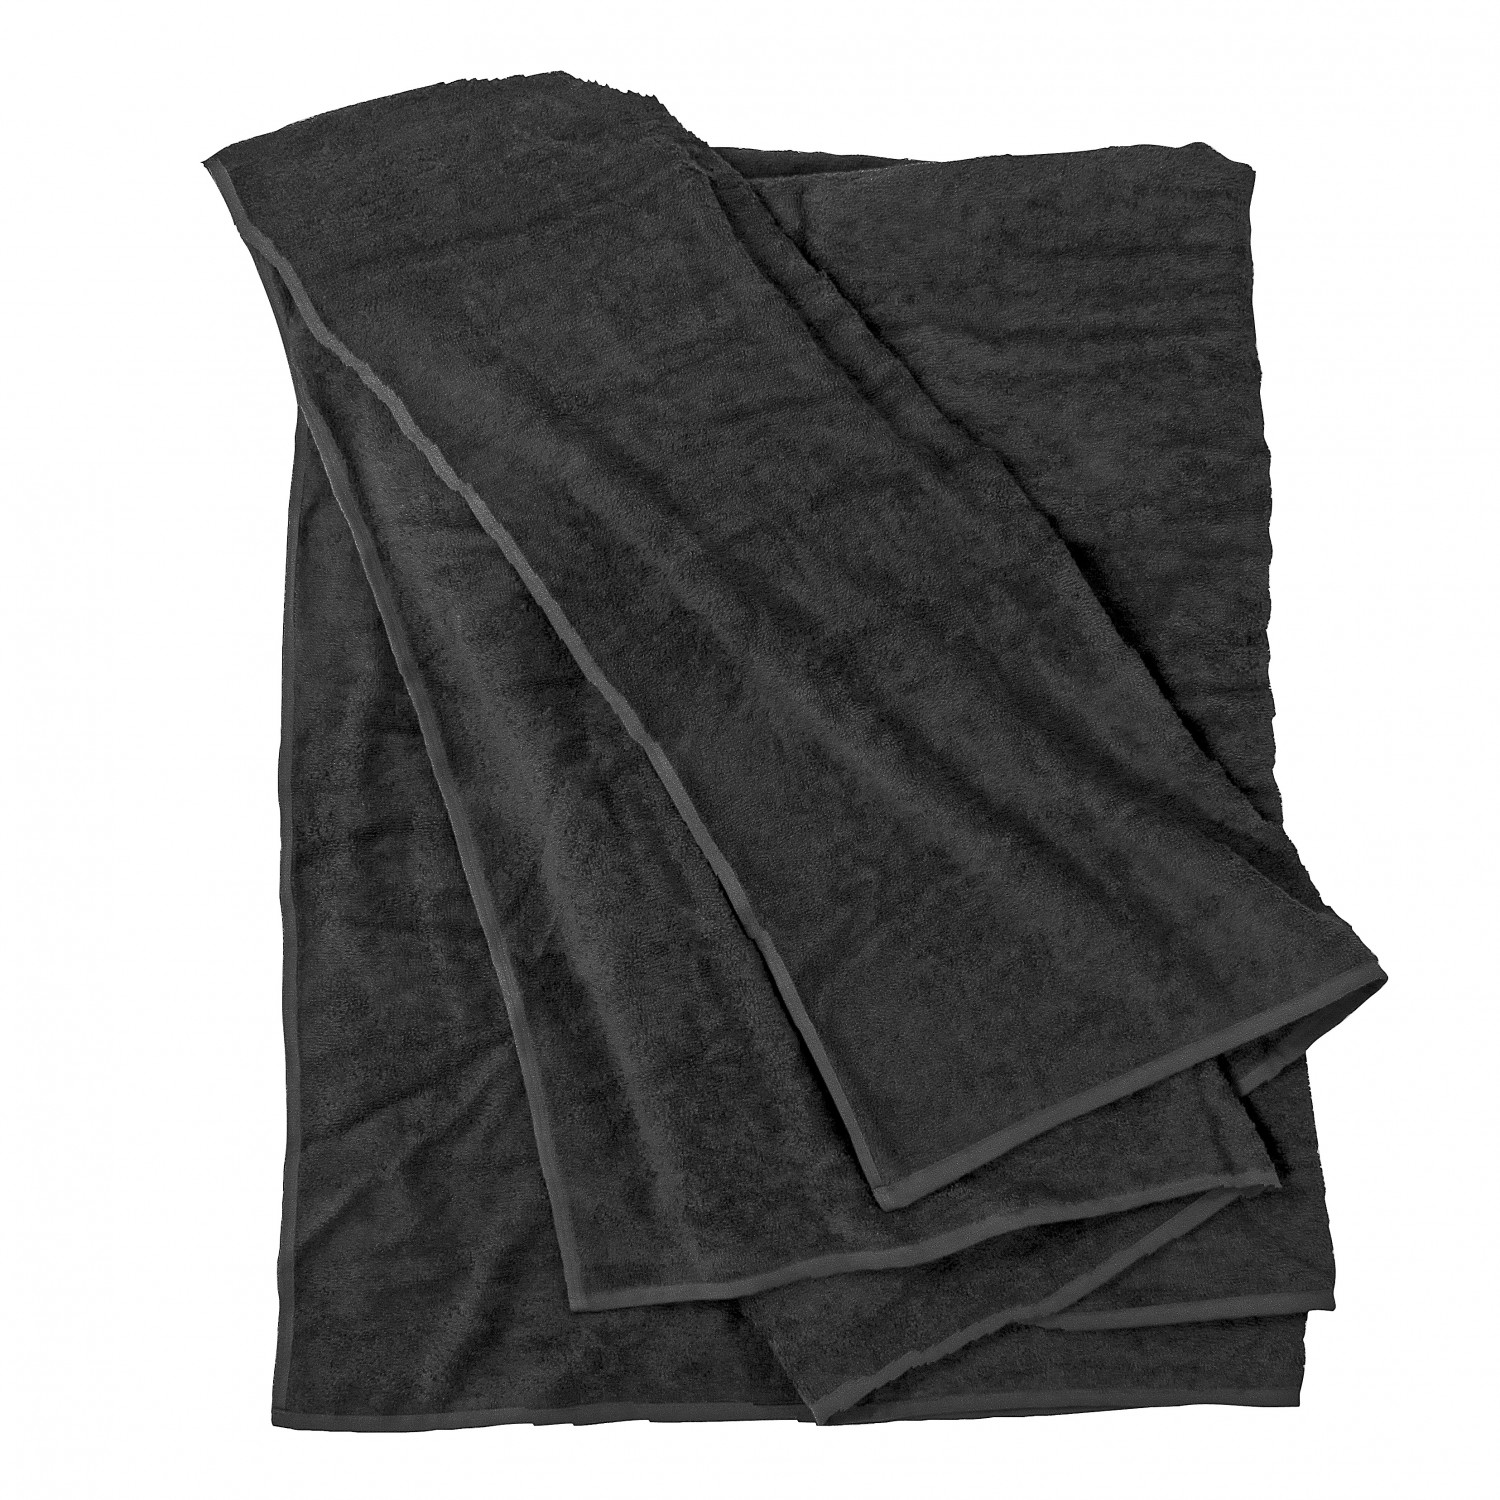 Detail Image to Bath towel in black by Kapart in large sizes 100x220 cm and 155x220 cm